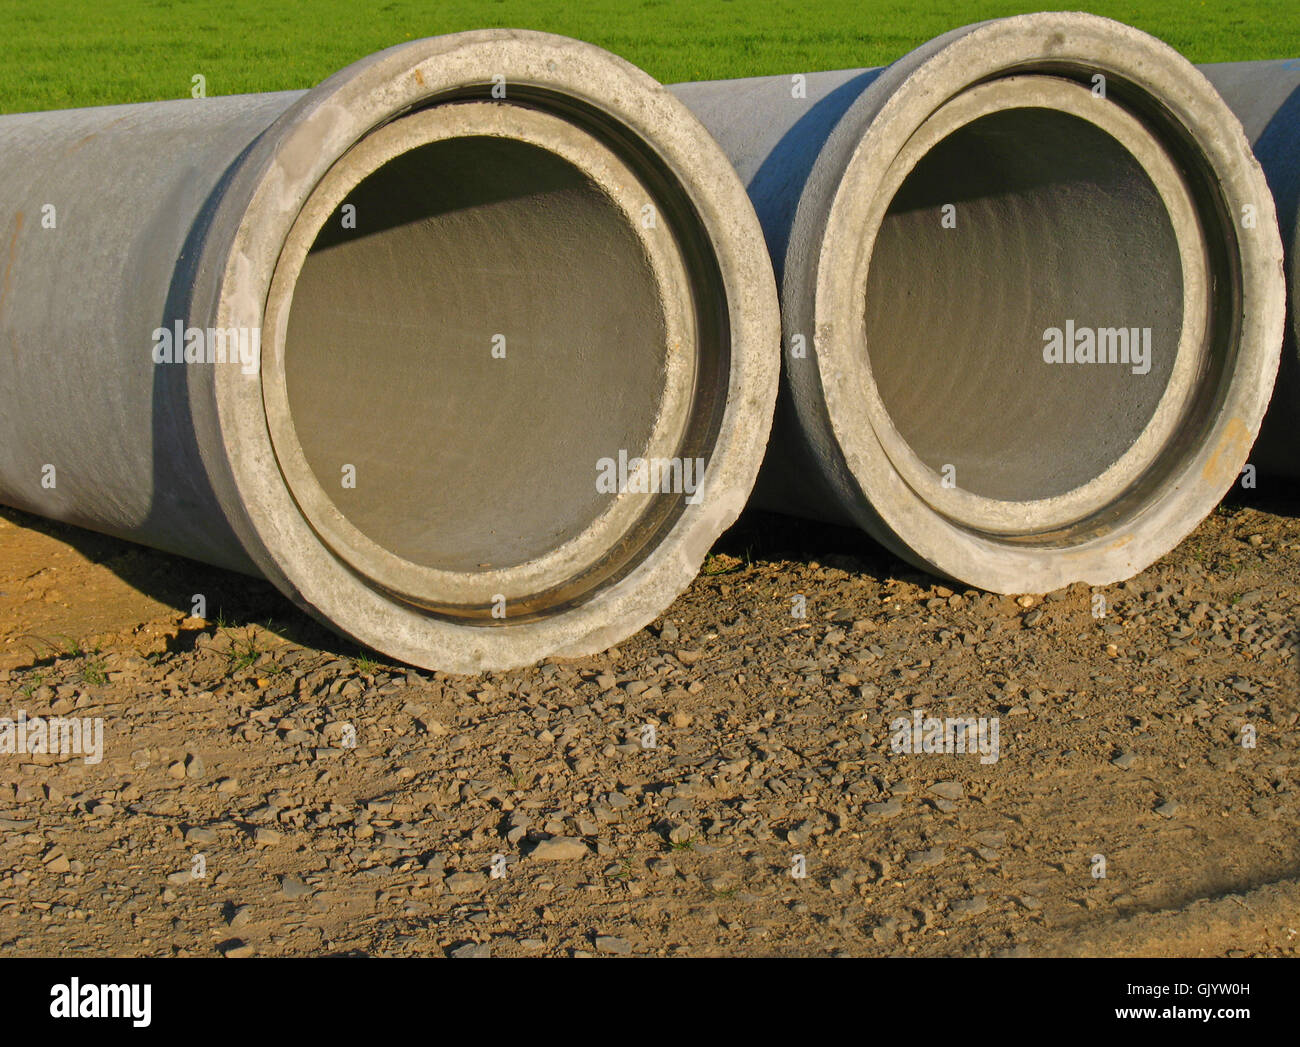 channel sewerage civil engineering - Stock Image